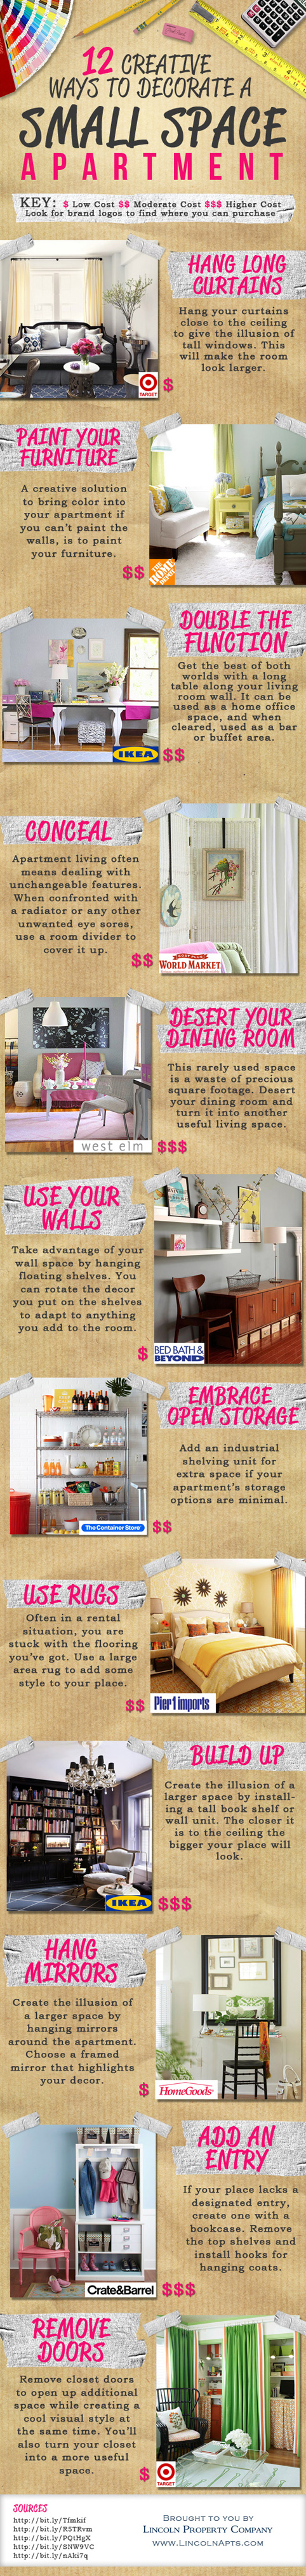 Creative Ways To Decorate Small Space